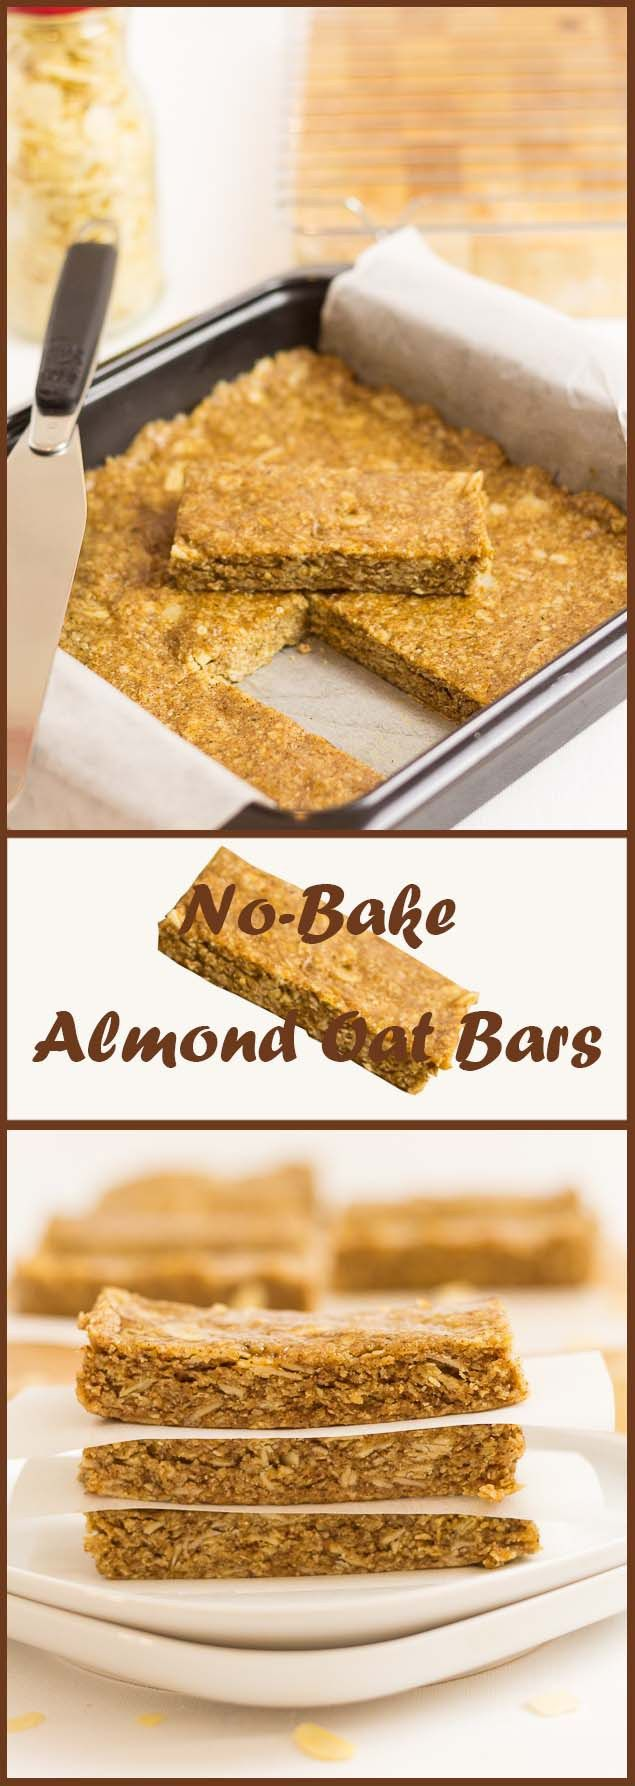 Crammed full of healthy wholegrain oats, almonds, almond butter and honey. These simple, easy no-bake bars are a guaranteed energy boost just when you need it most.